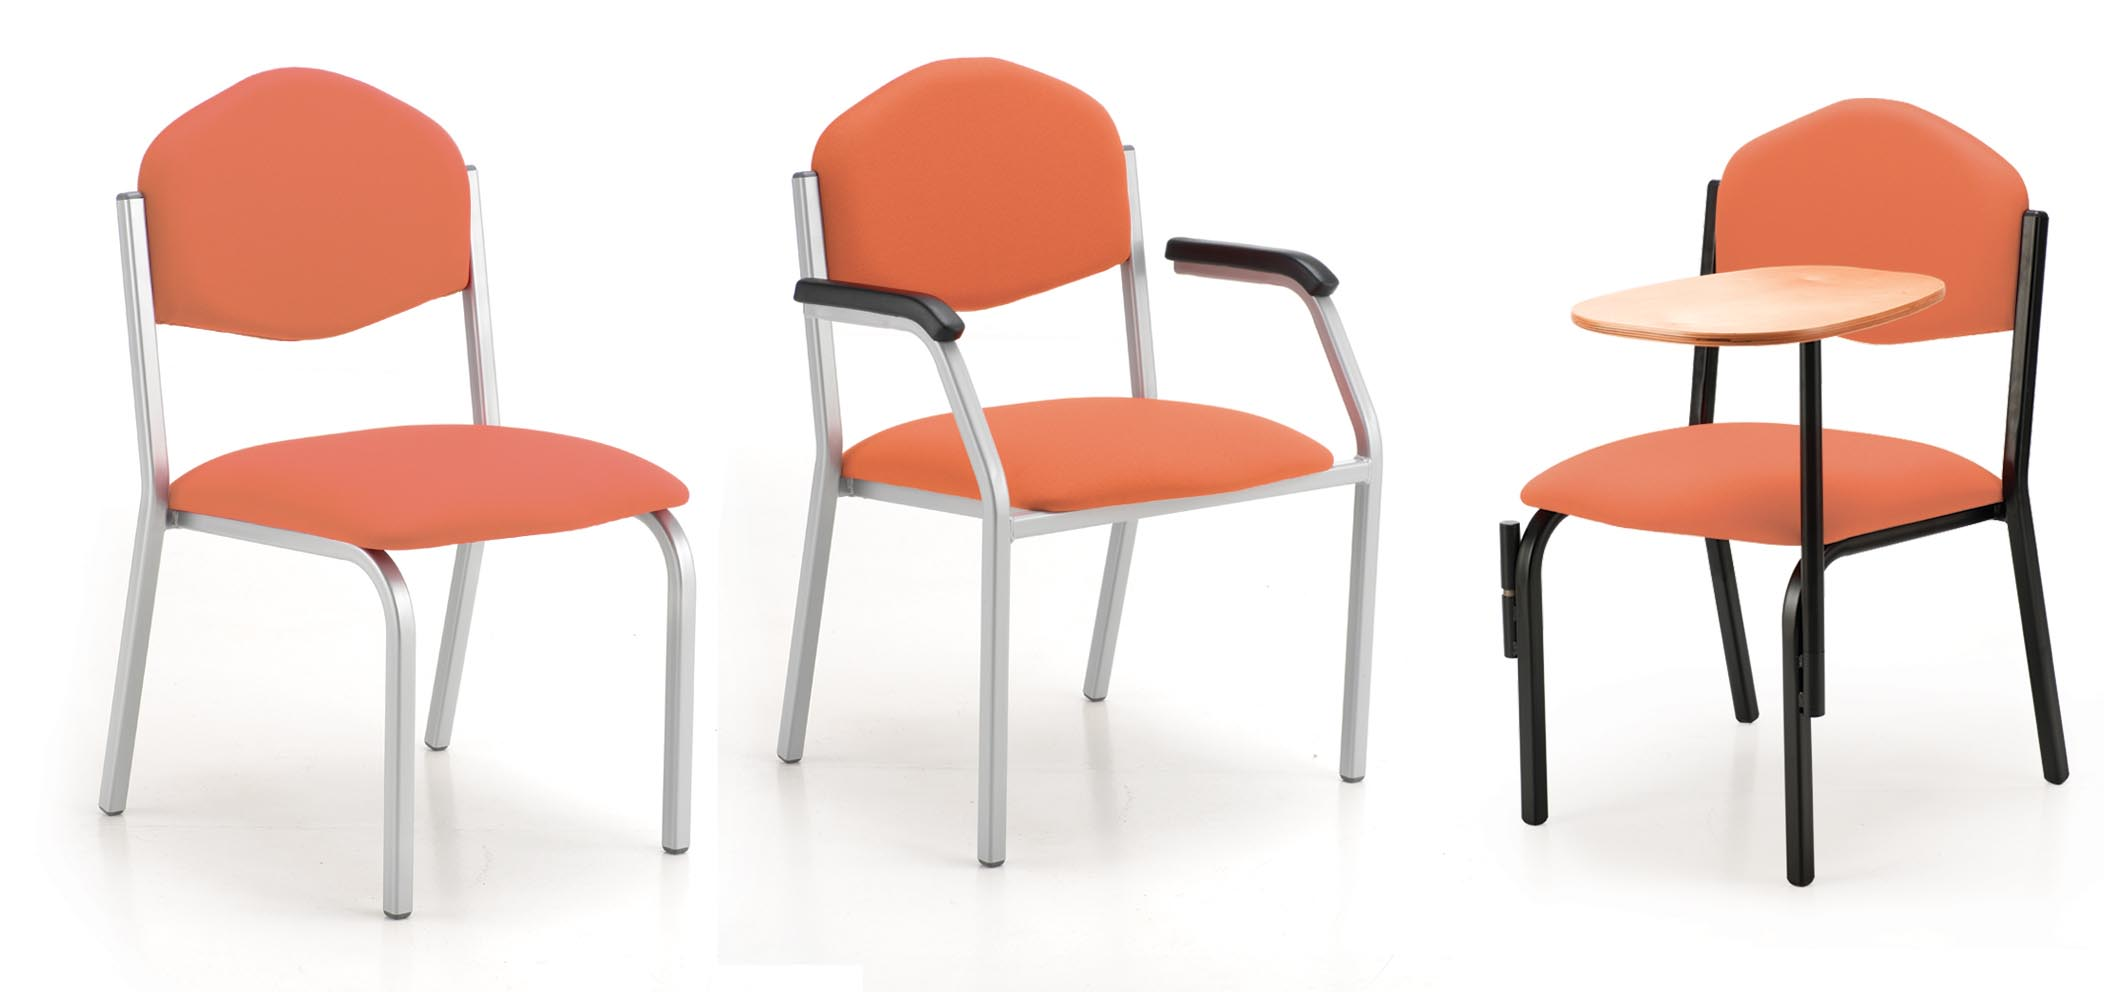 heavy duty visitor chairs richardsons office furniture and supplies